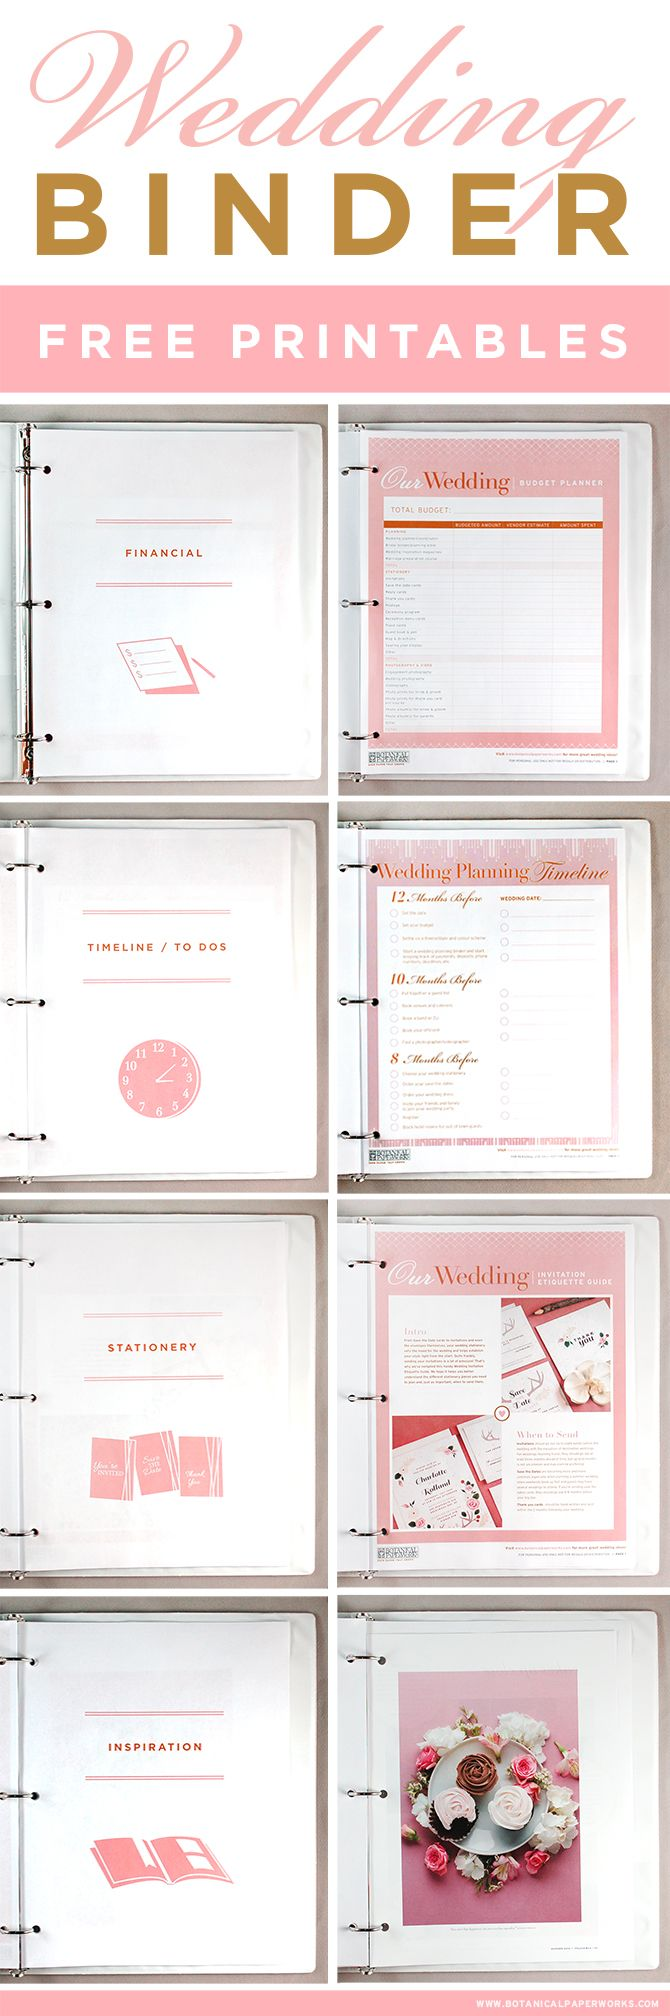 Get access to these FREE printables to help you create the wedding planning binder of your dreams! #freeprintables #freeprintable